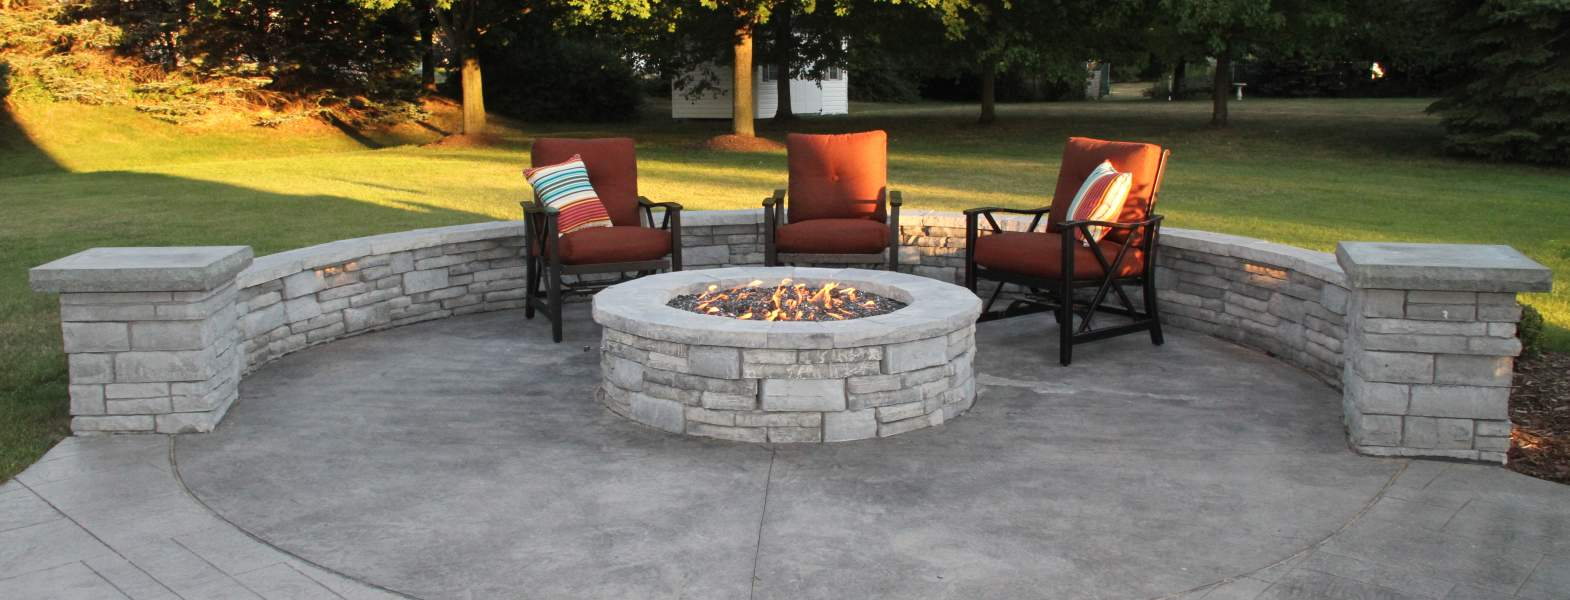 Traditional Patio with Fire Pit